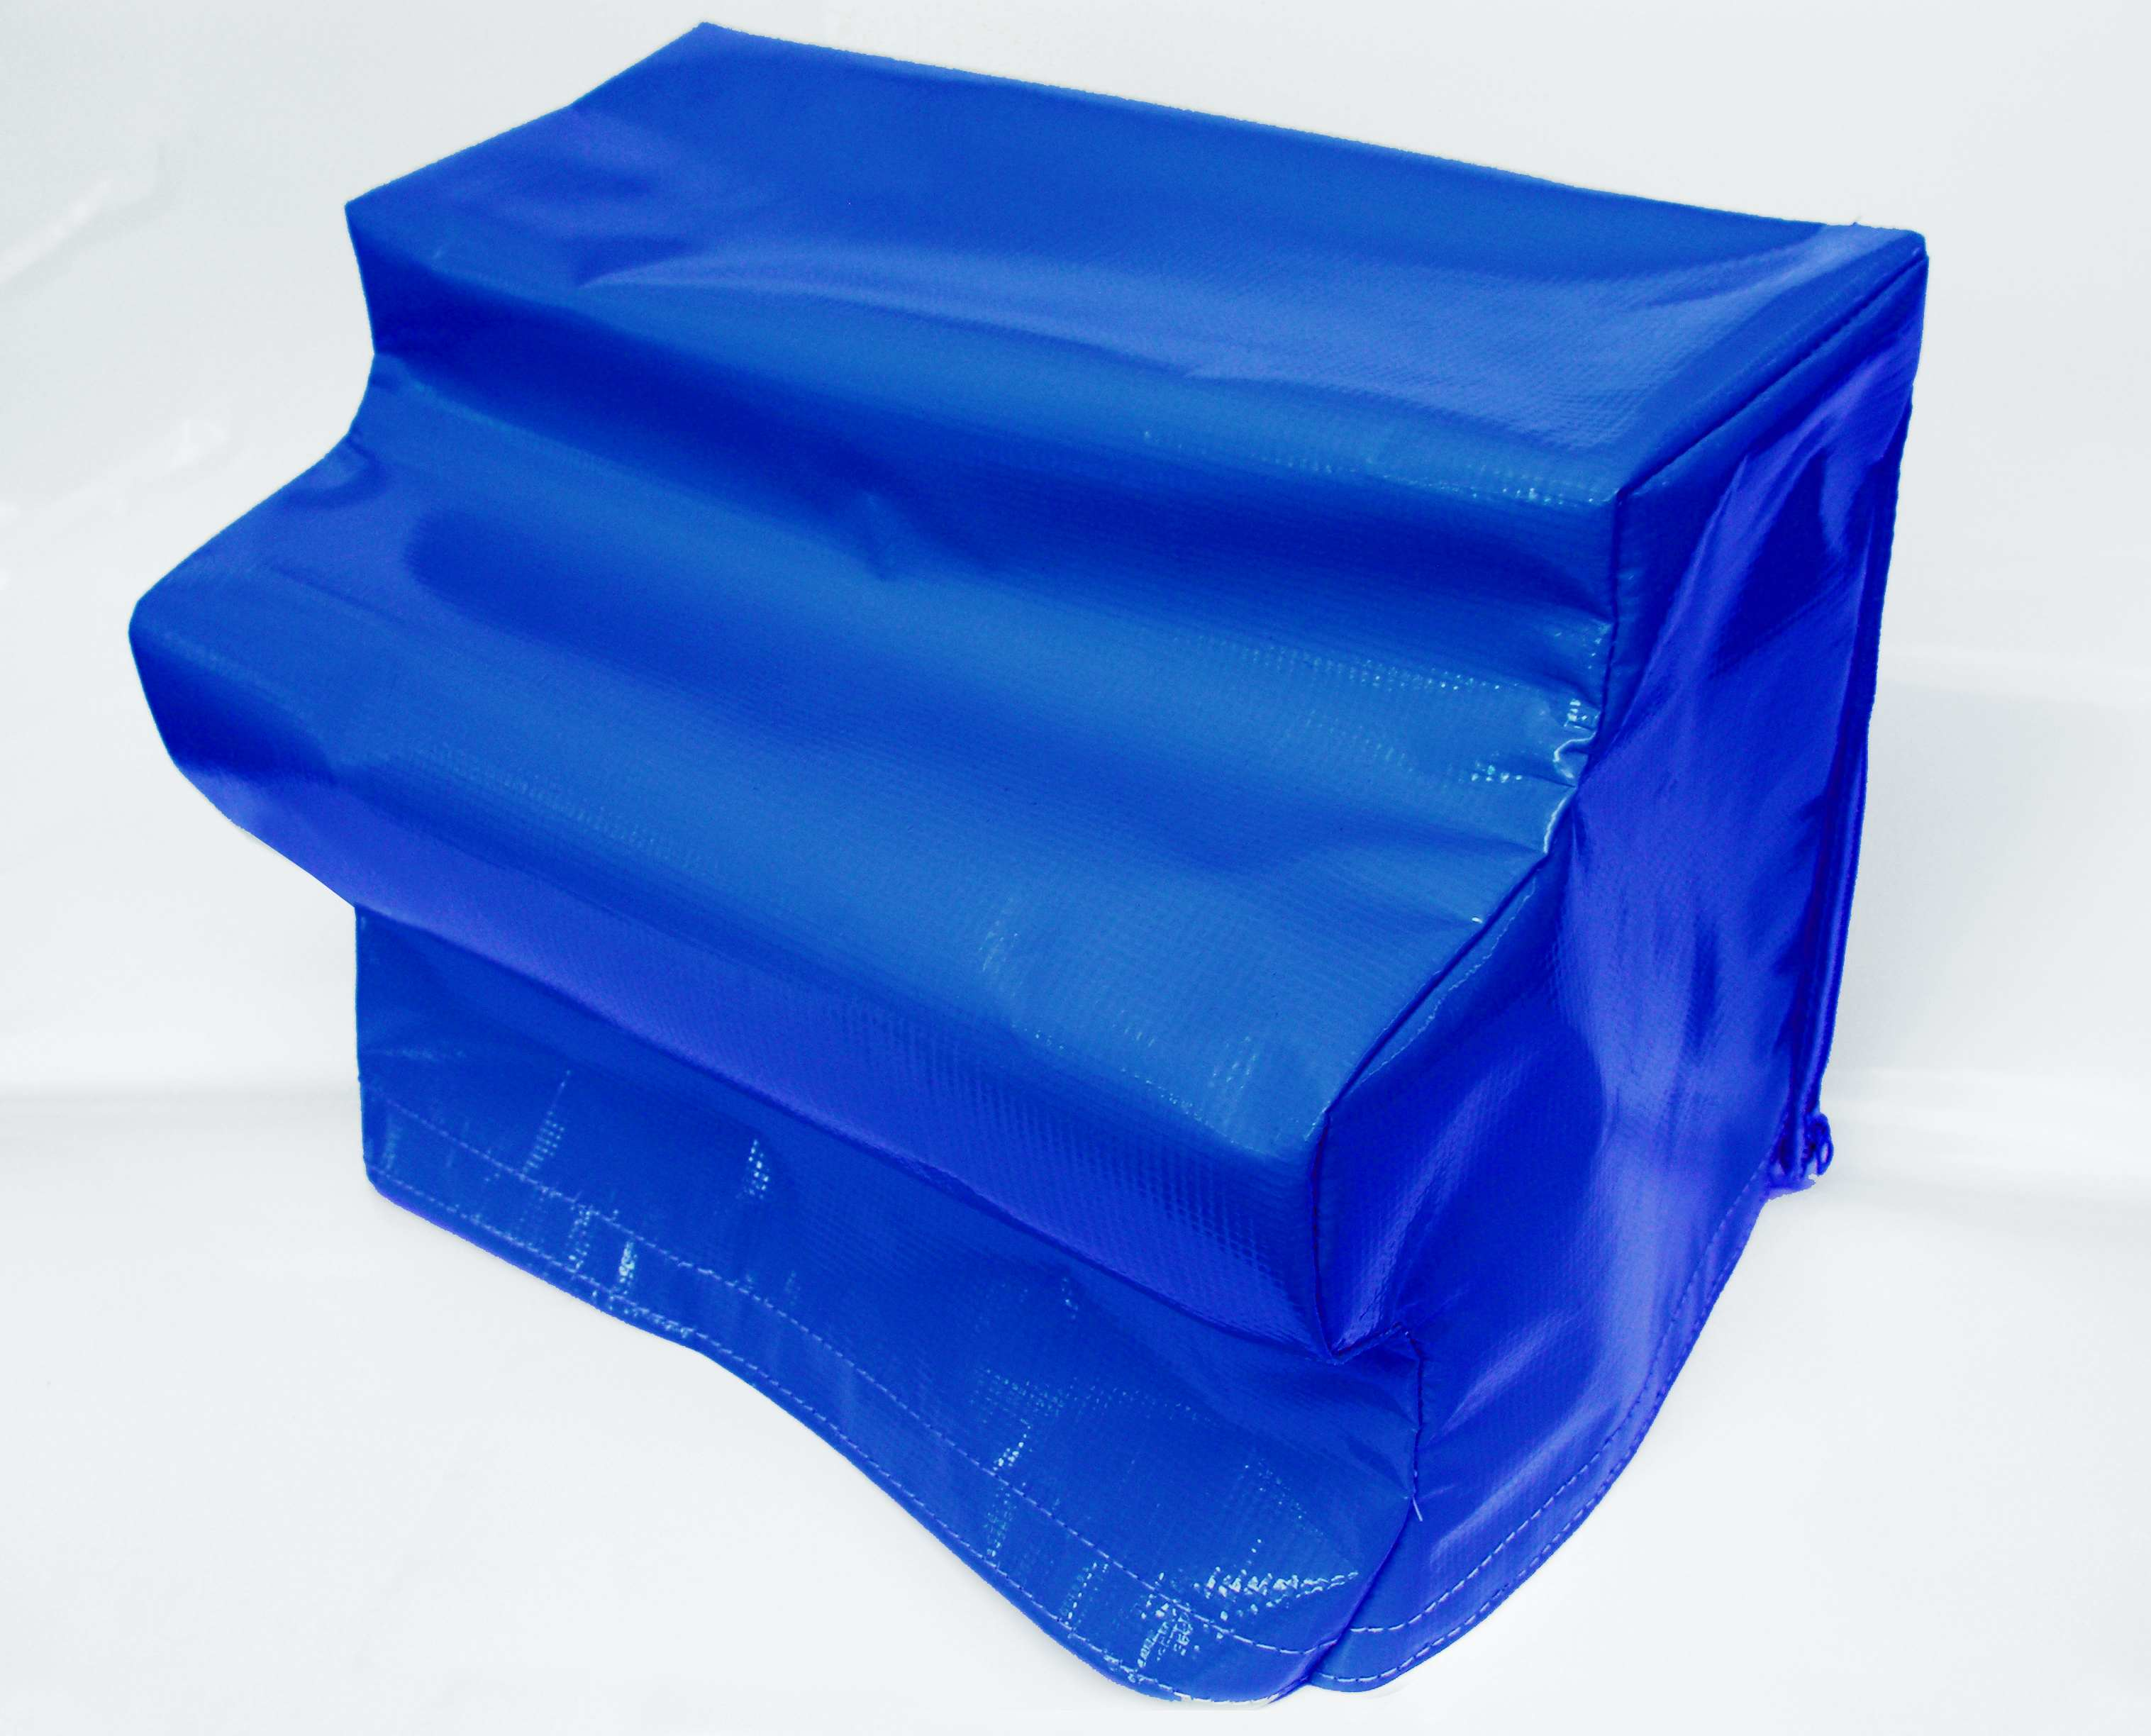 "VINYL COATED NYLON EQUIPMENT COVERS 18"" x 18"" x 24"""